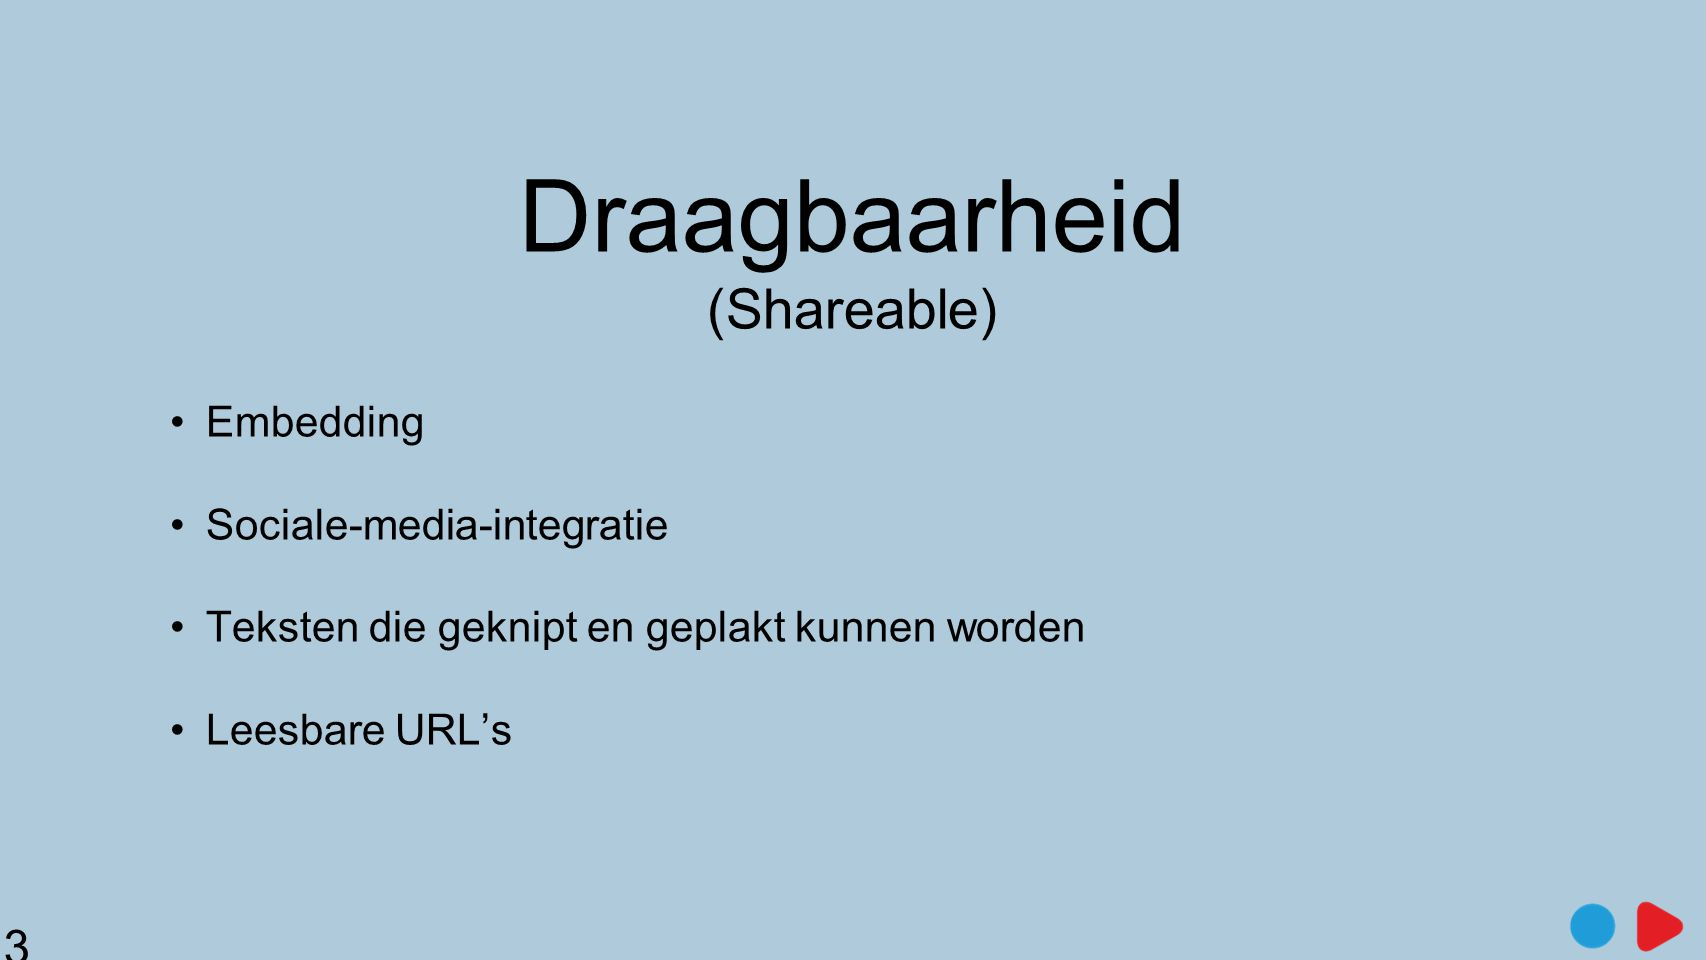 Draagbaarheid (Shareable)